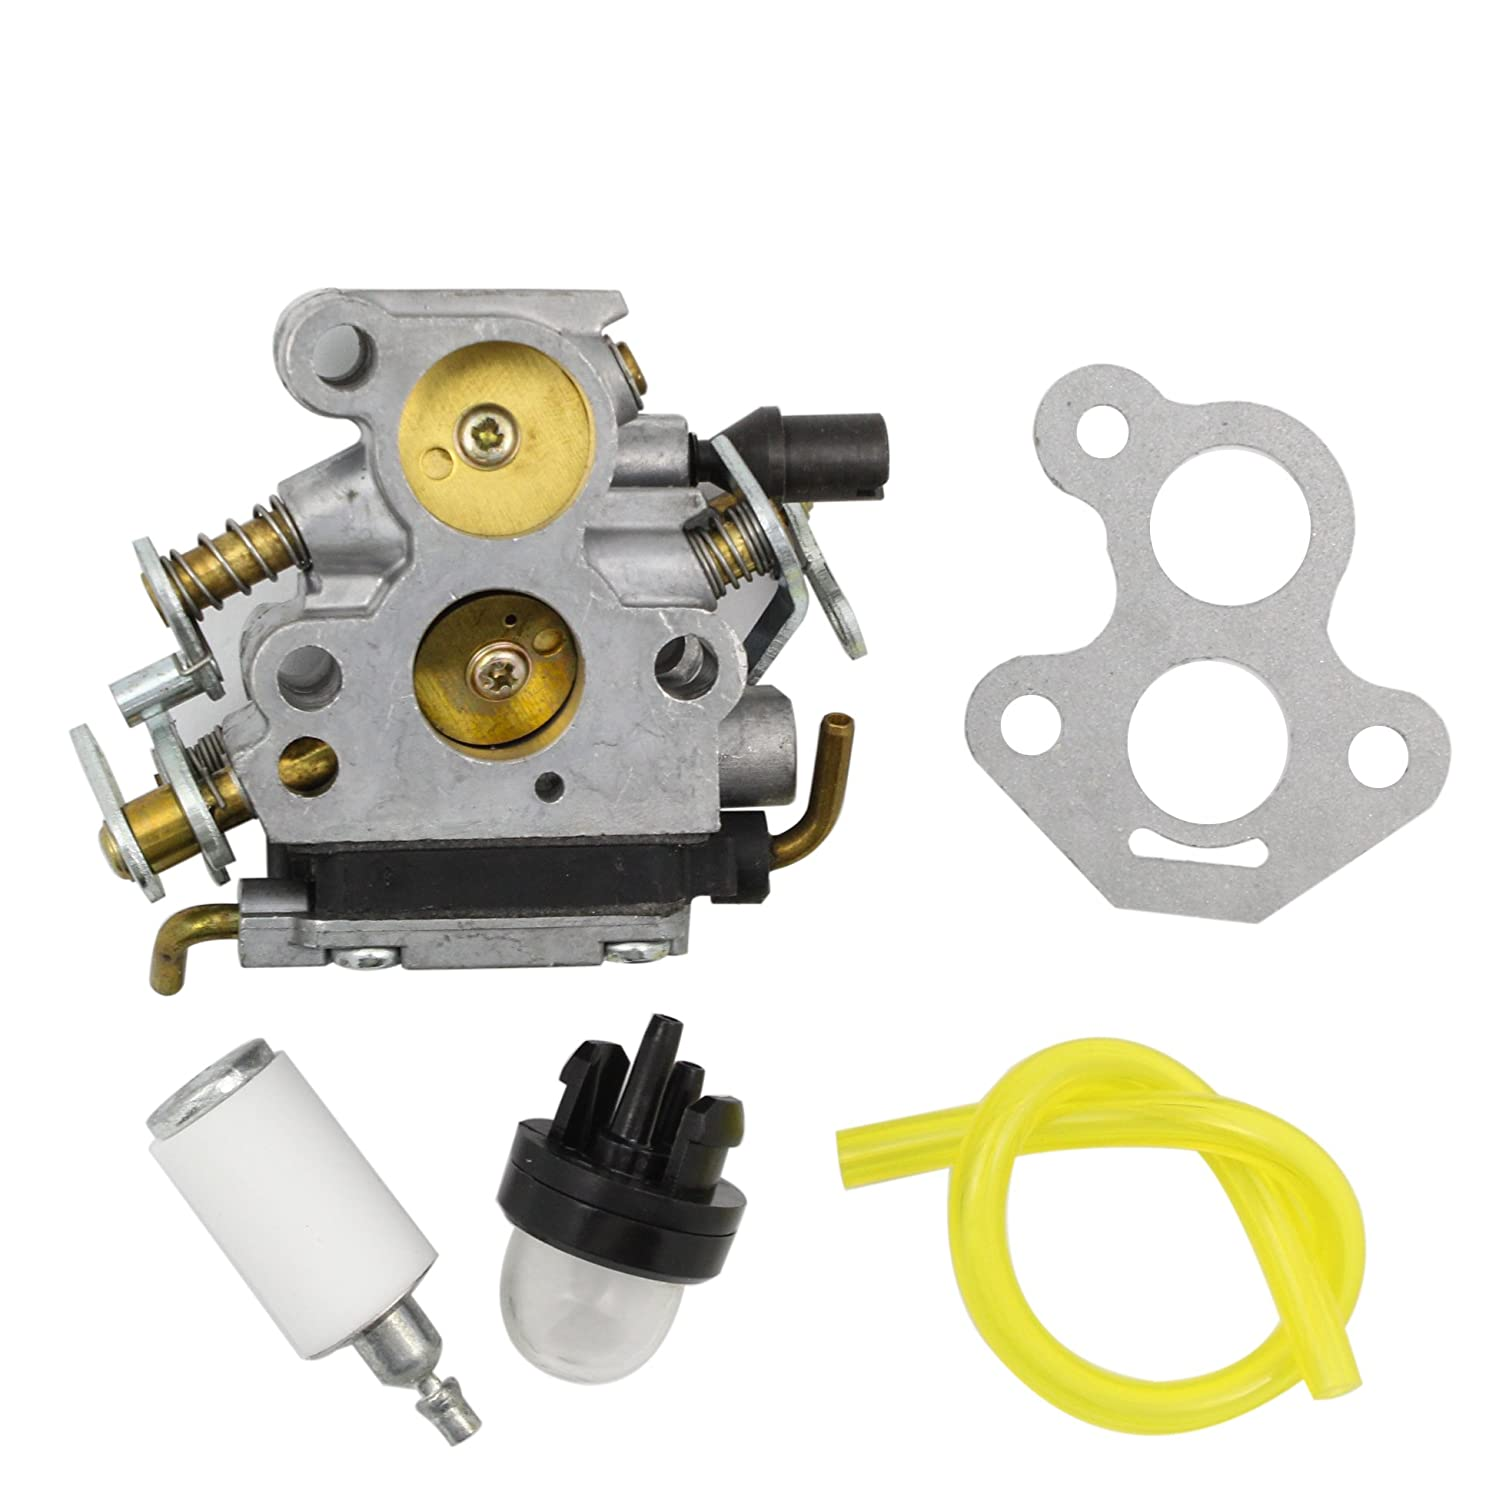 New Replacement Carburetor For Husqvarna 235 235e 236 Genuine Oem Mtd Troybilt 7531225 X3 240 240e Chainsaw 574719402 545072601 Carb Gasket Garden Outdoor